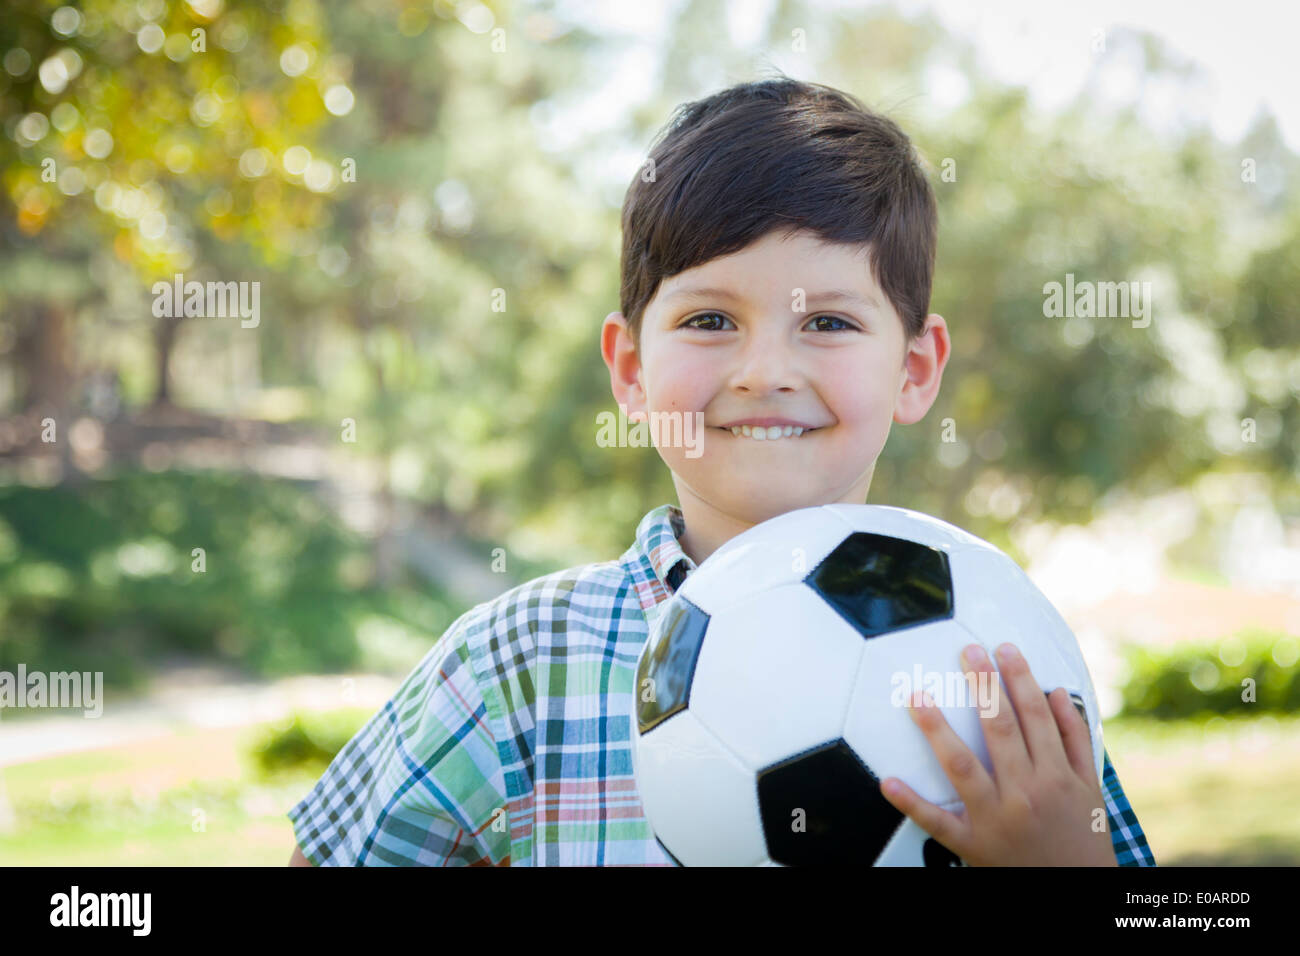 Cute Young Boy Playing with Soccer Ball Outdoors in the Park. - Stock Image